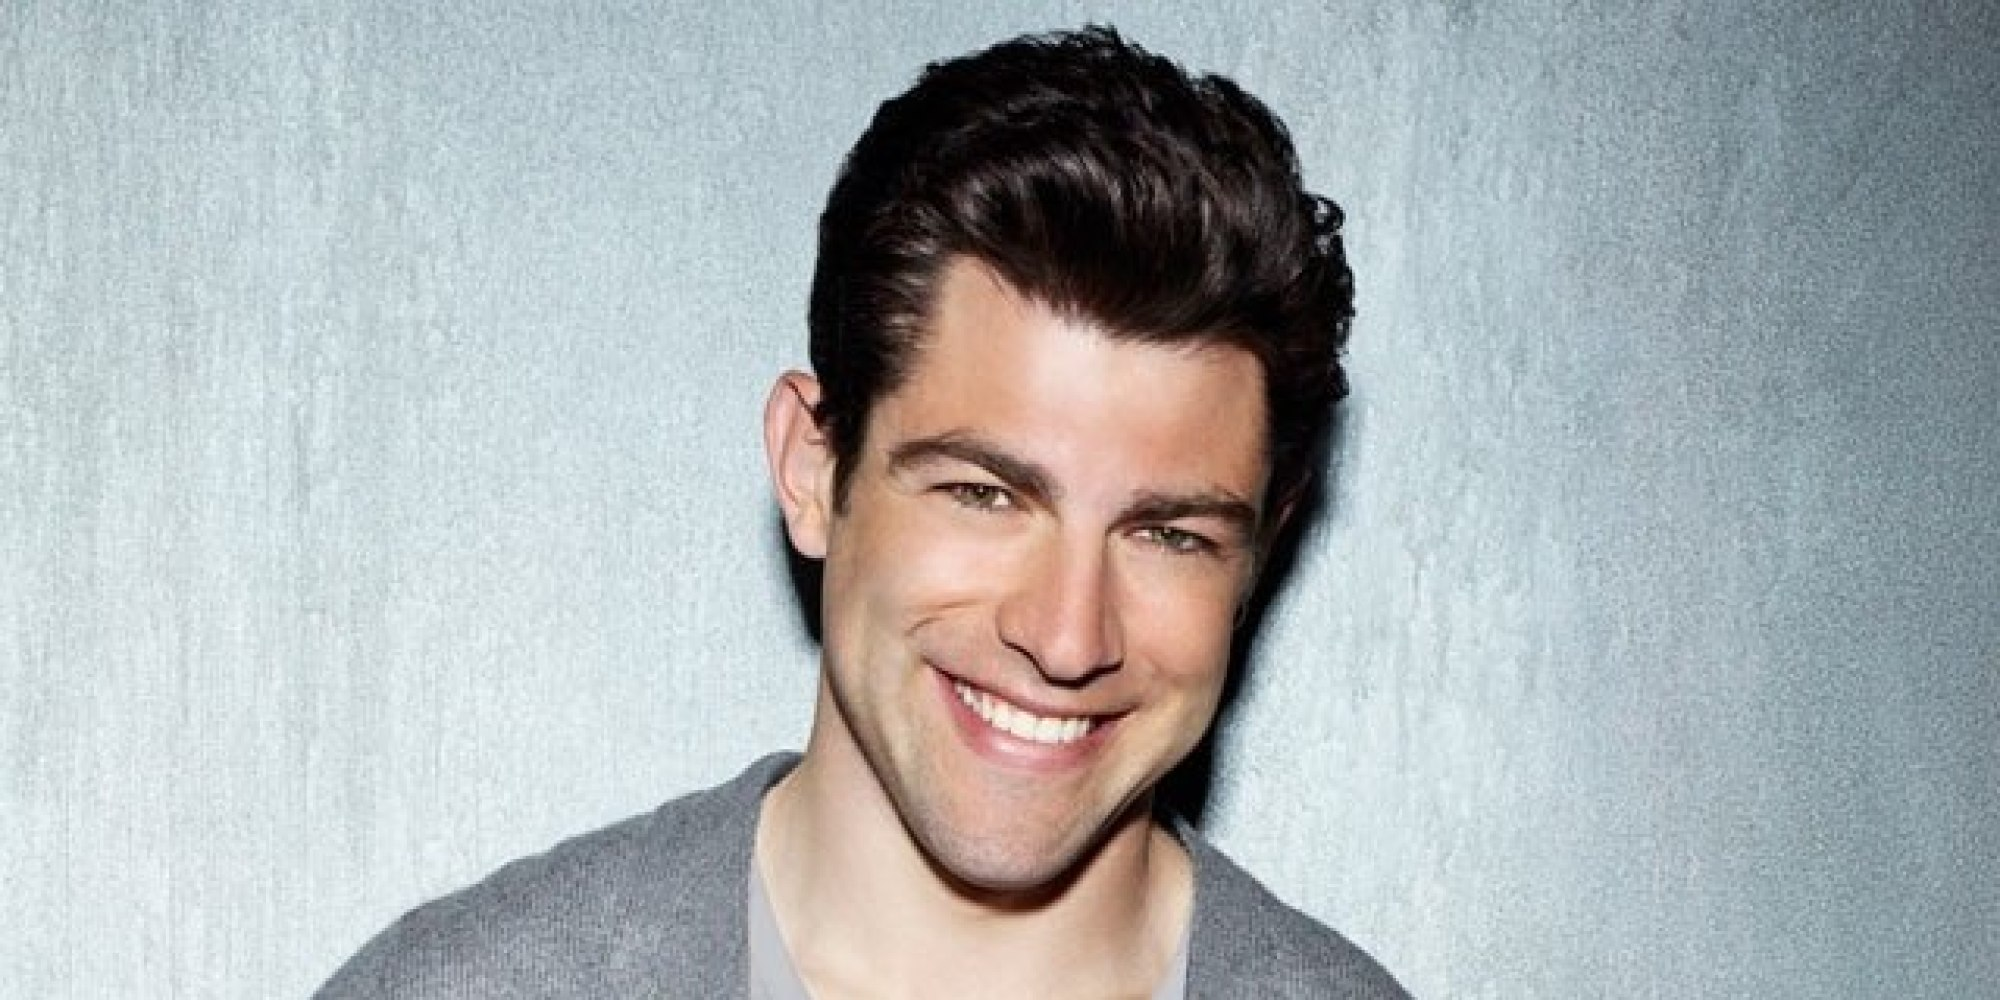 https://i0.wp.com/i.huffpost.com/gen/1752770/images/o-MAX-GREENFIELD-QUIT-ACTING-facebook.jpg